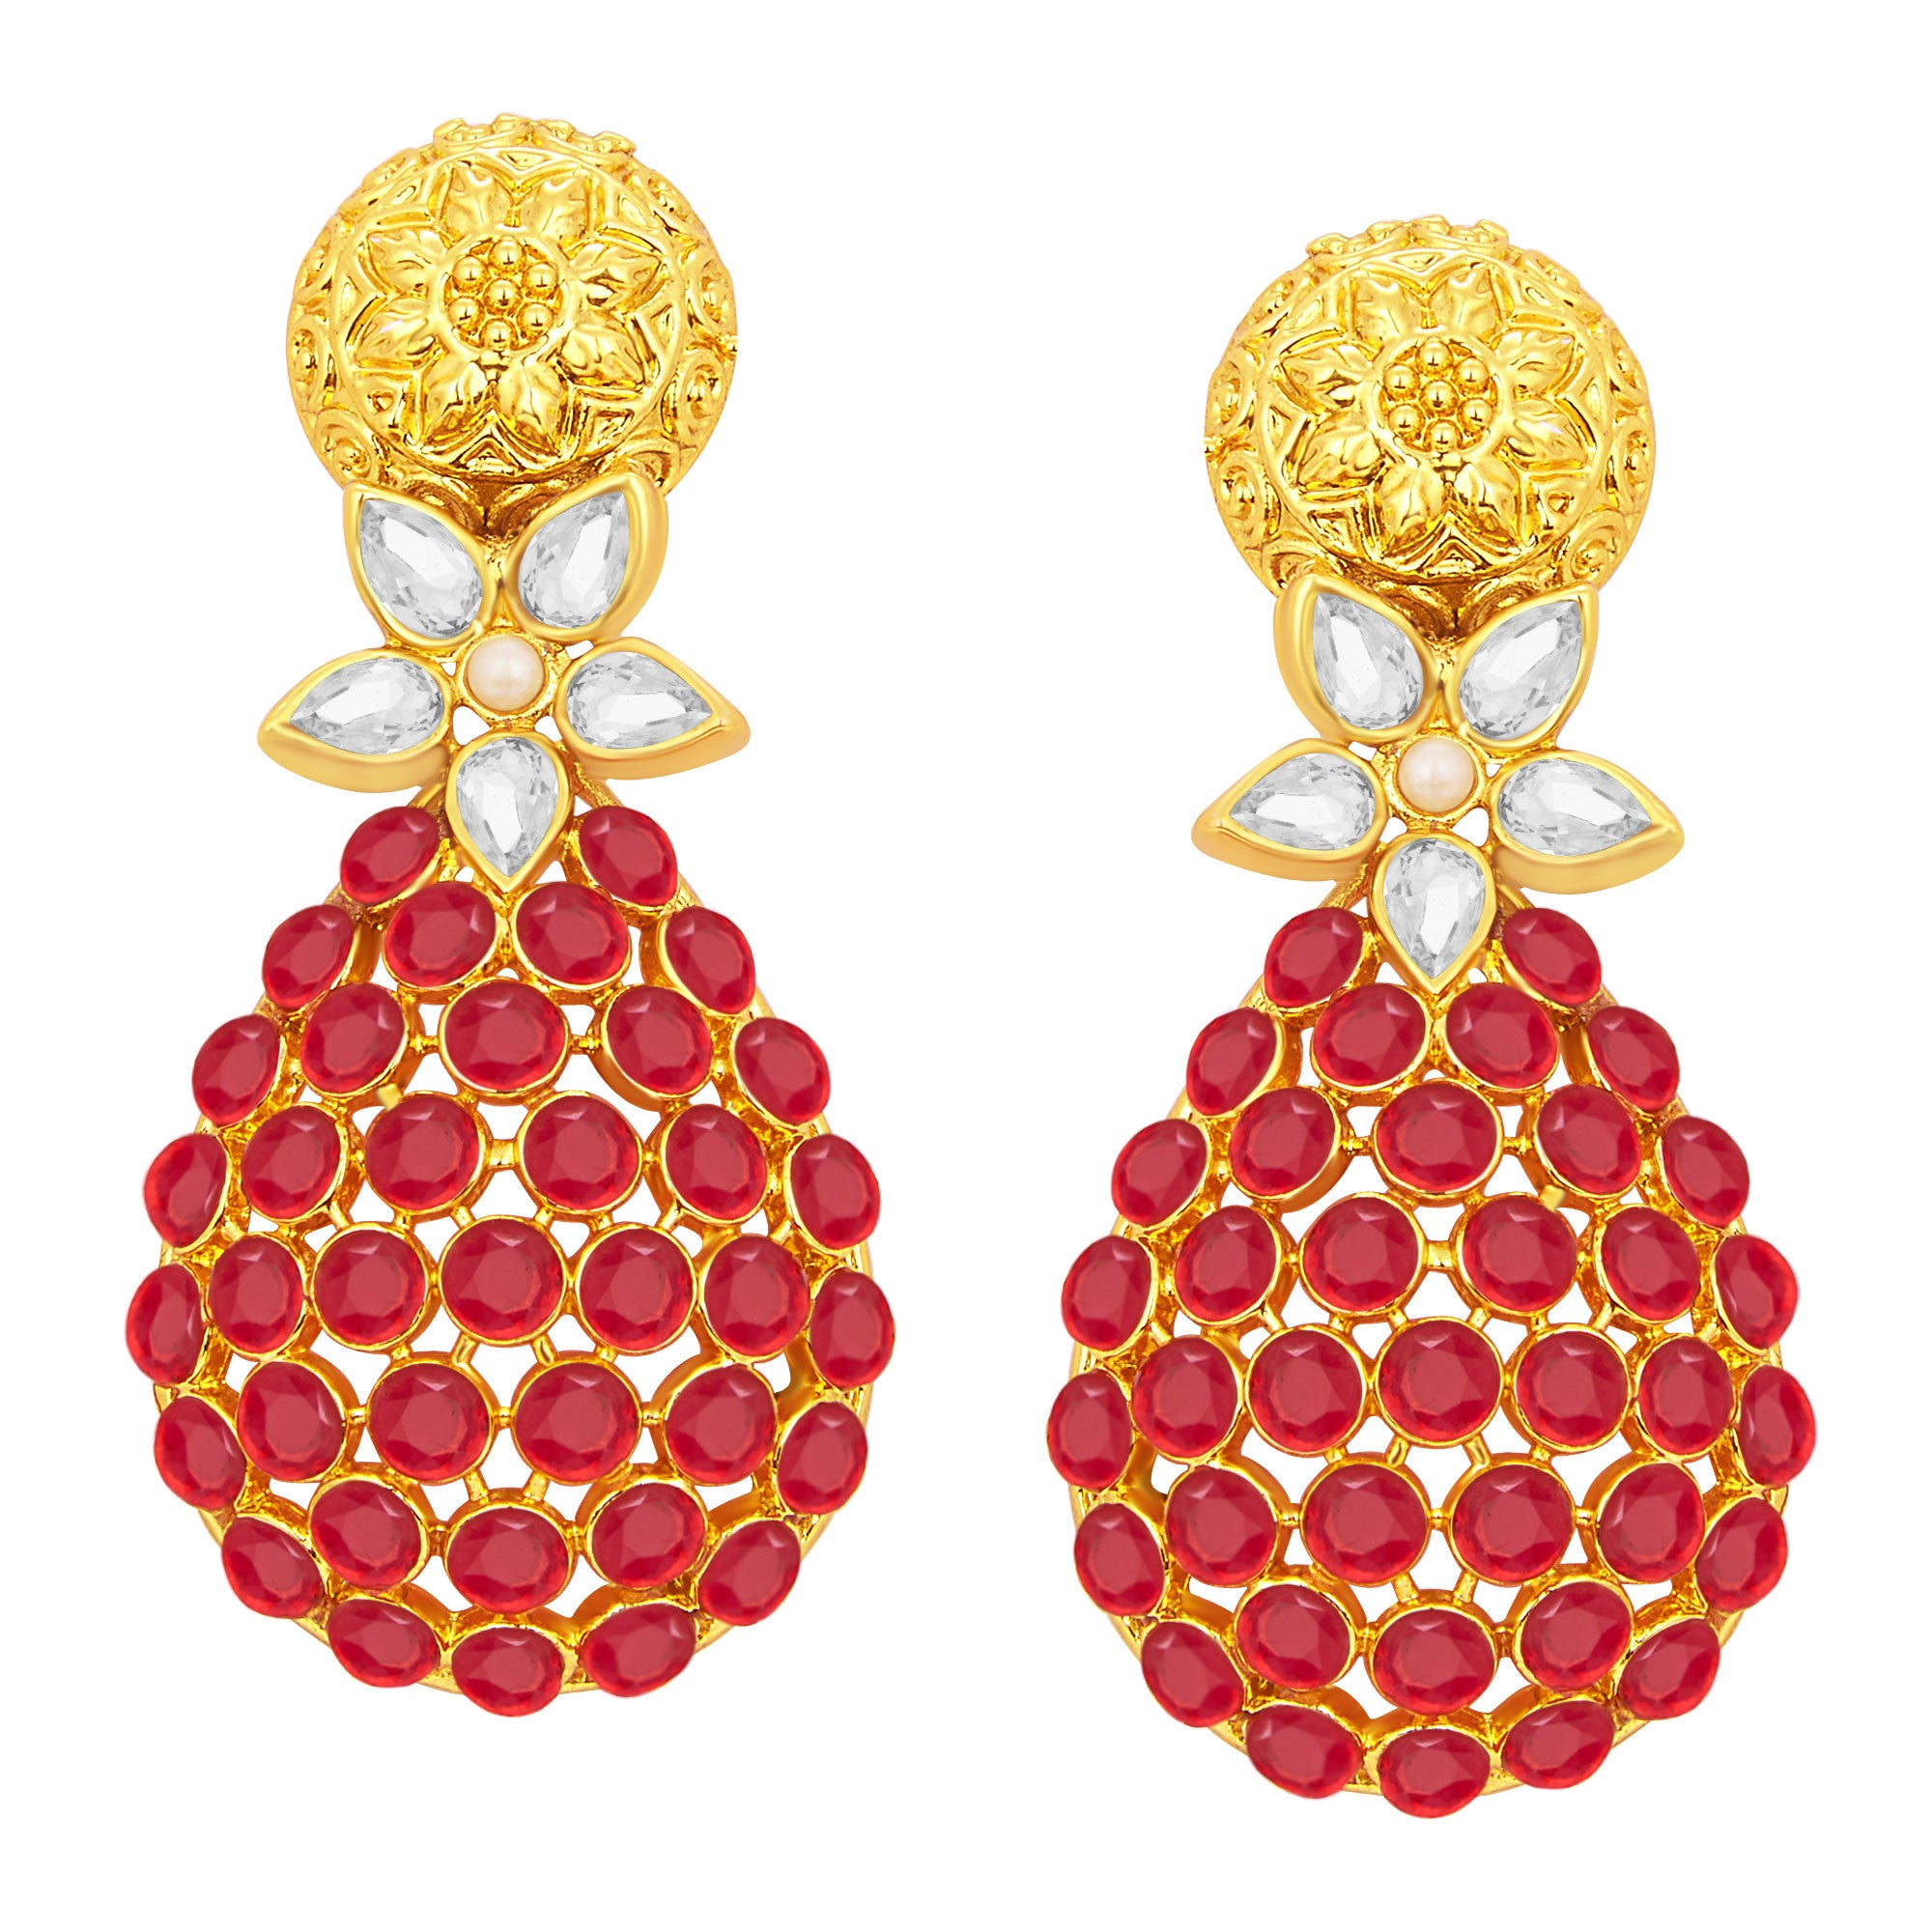 09883c38f Sukkhi Attractive Gold Plated American Diamond Earring For Women ...